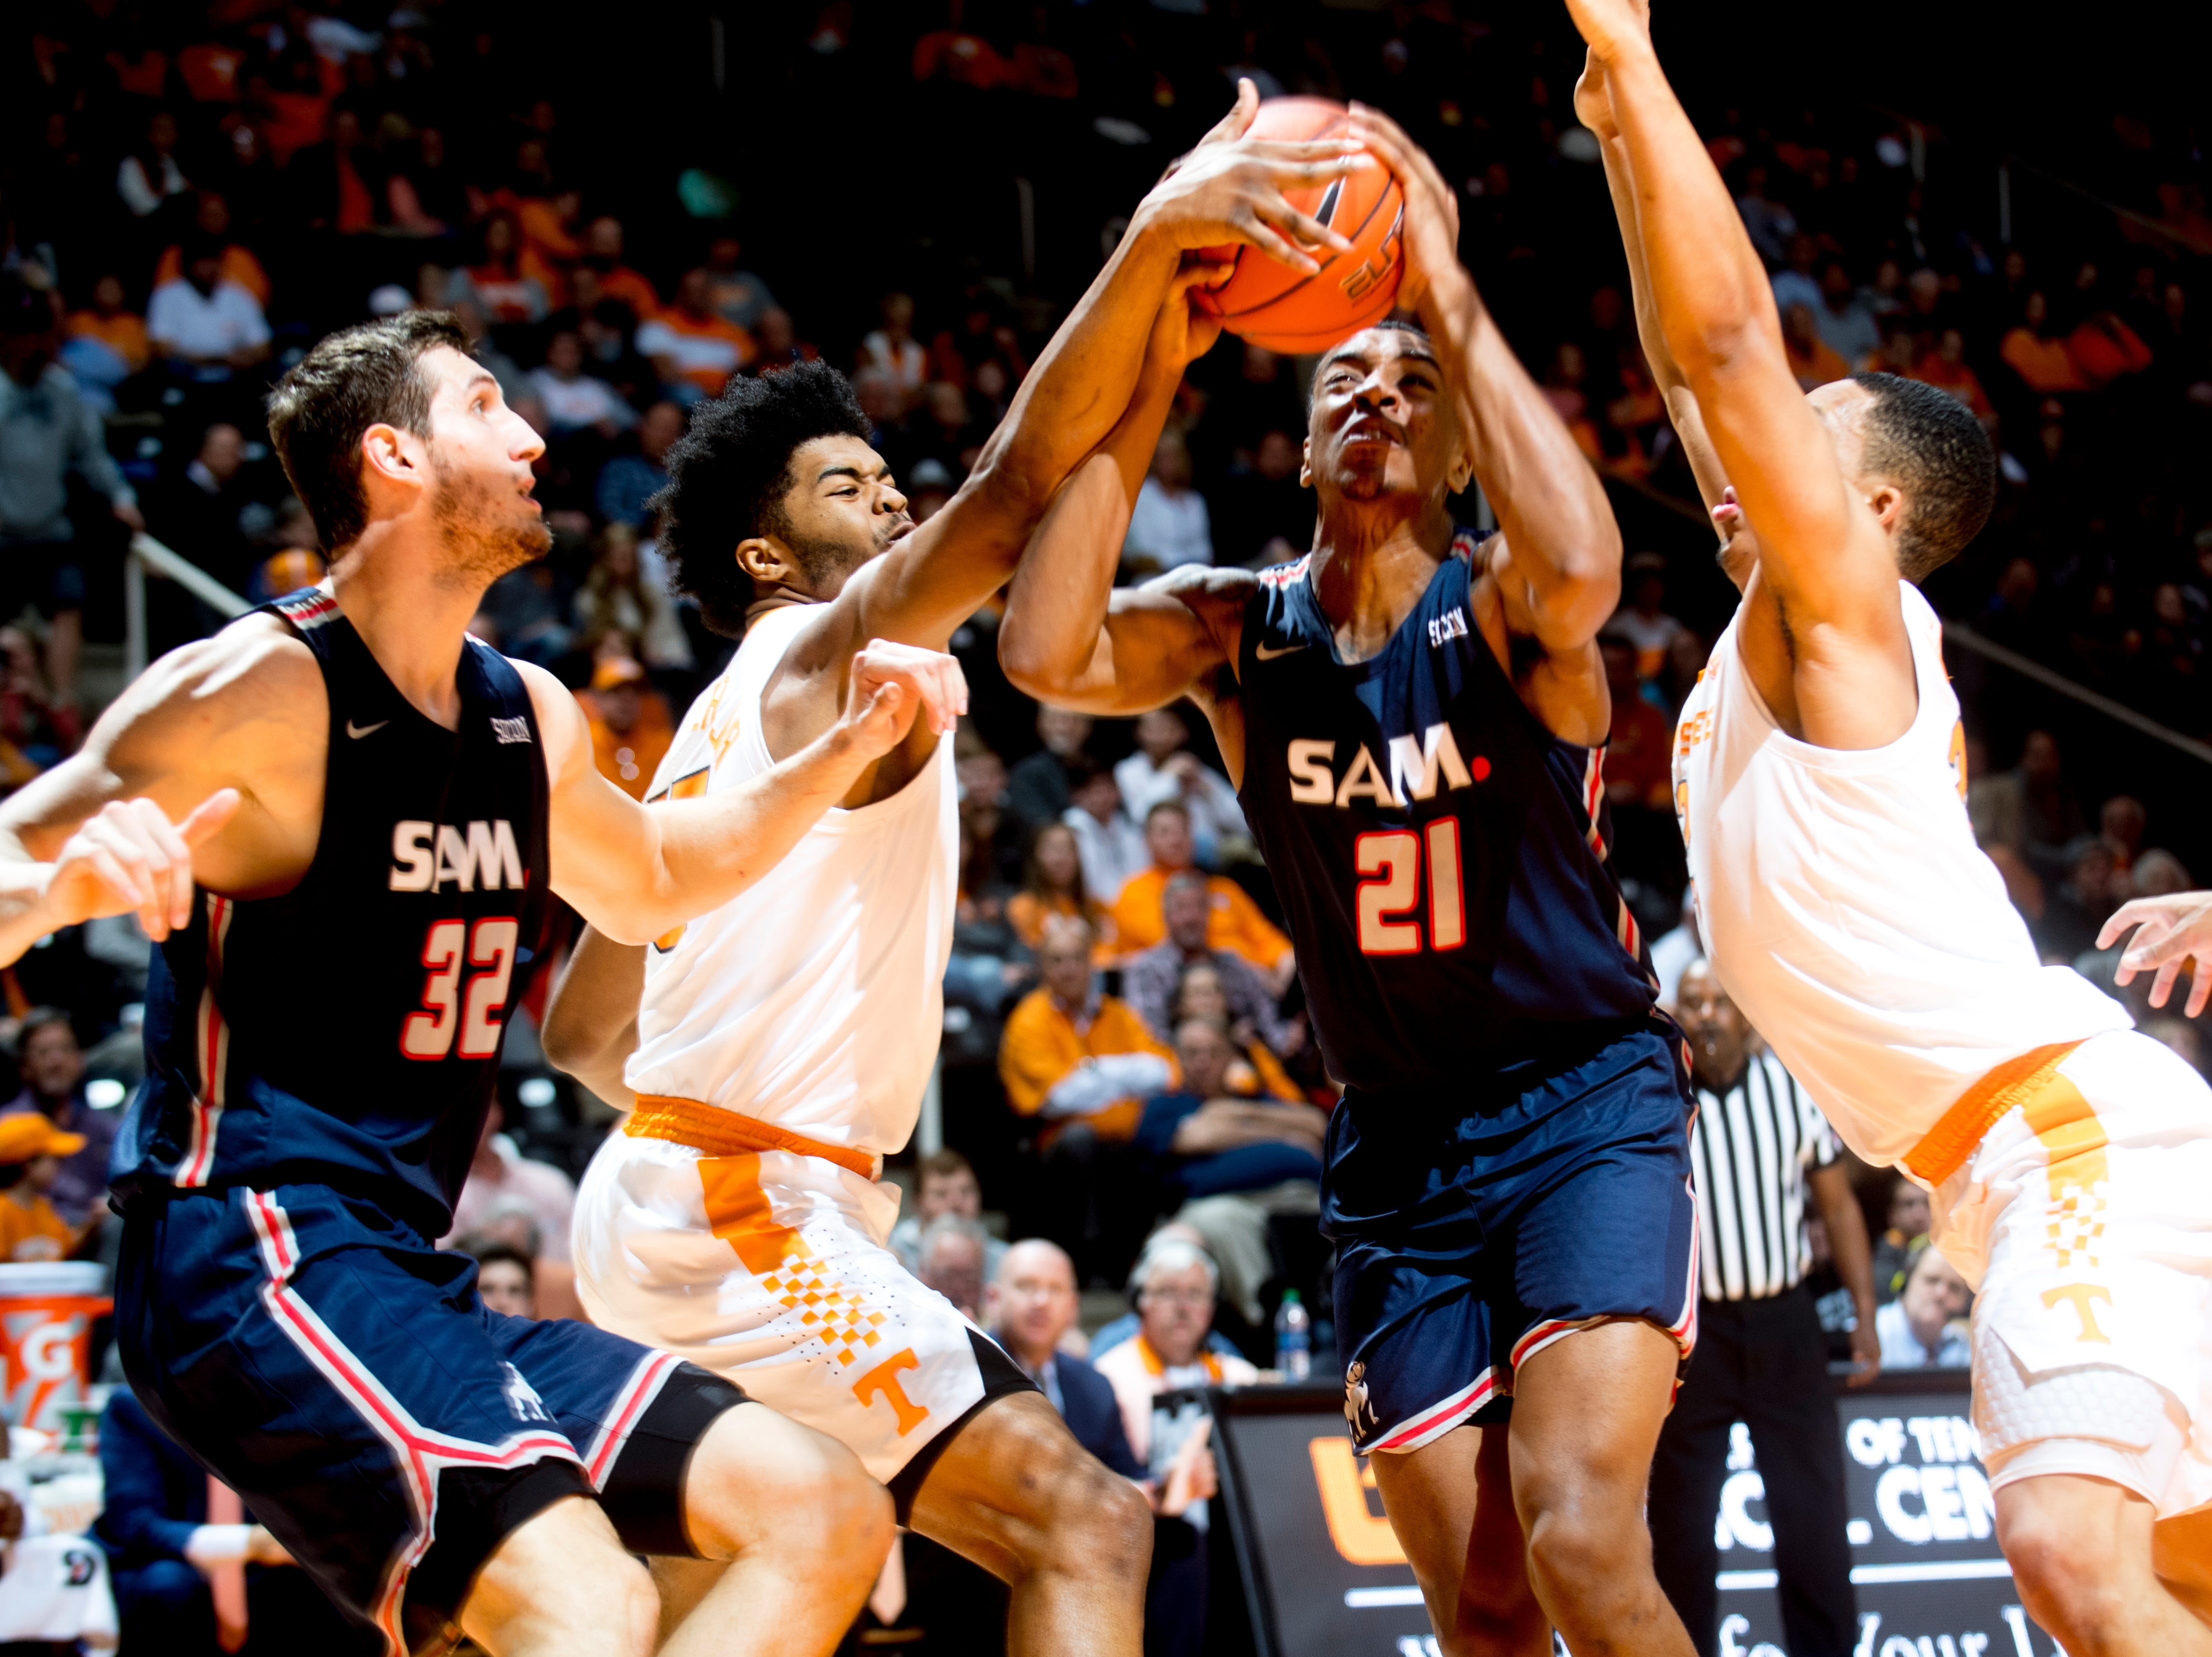 Samford forward Robert Allen (21) goes for a layup during a game between Tennessee and Samford at Thompson-Boling Arena in Knoxville, Tennessee on Wednesday, December 19, 2018.